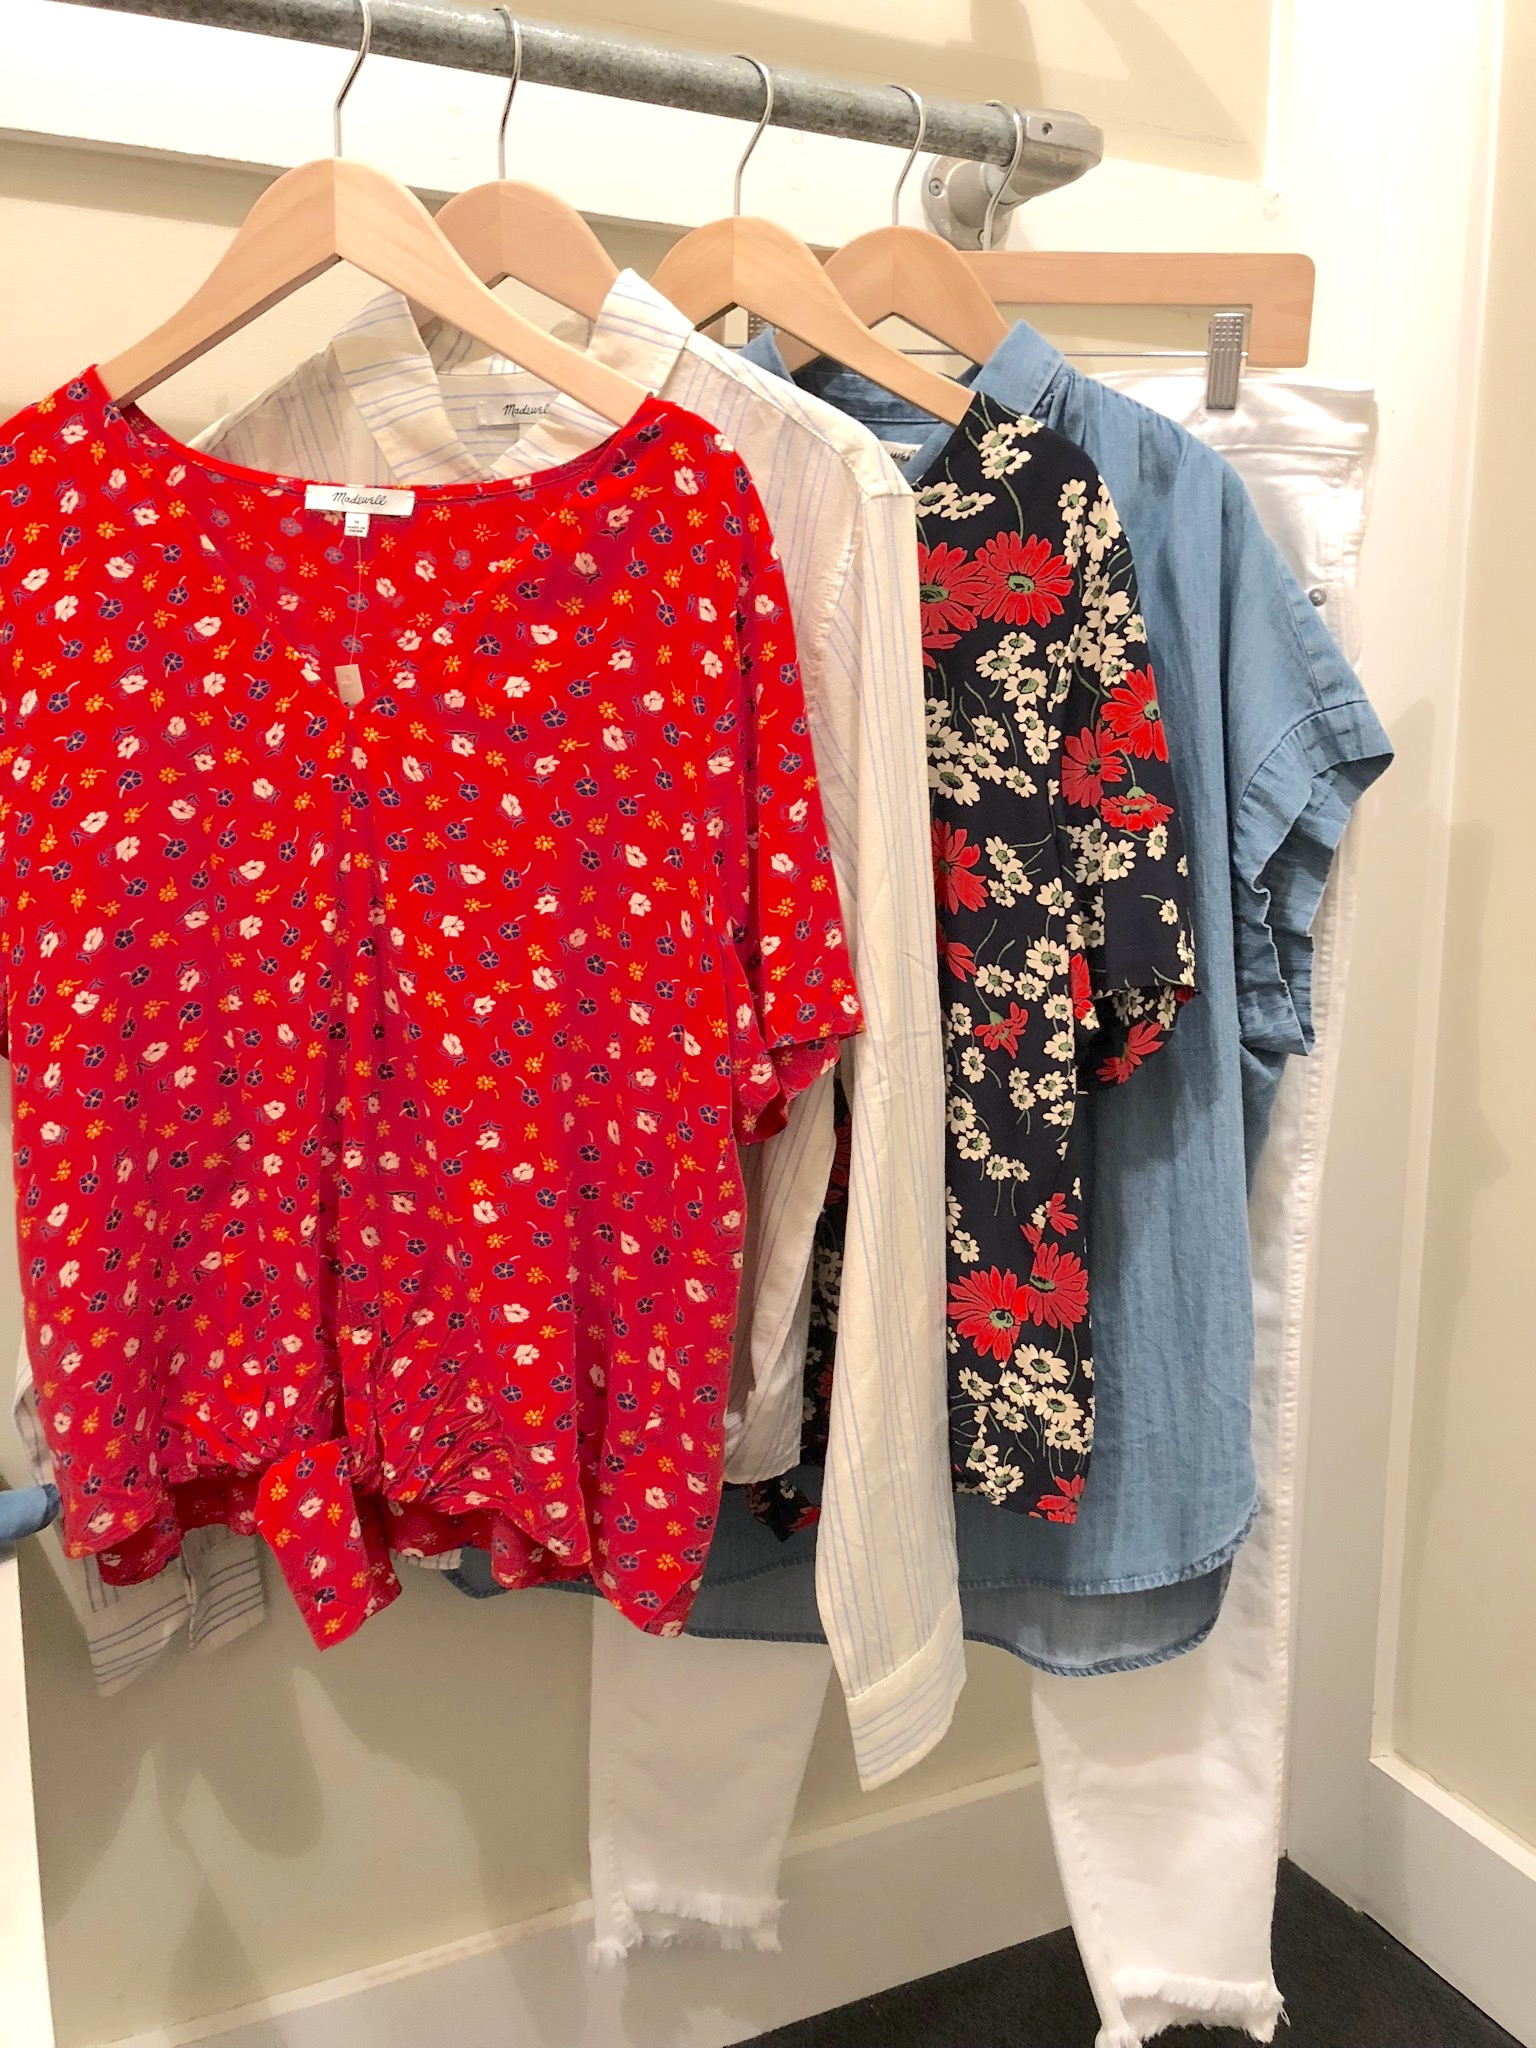 Madewell Fitting Room Reviews March 2019 1